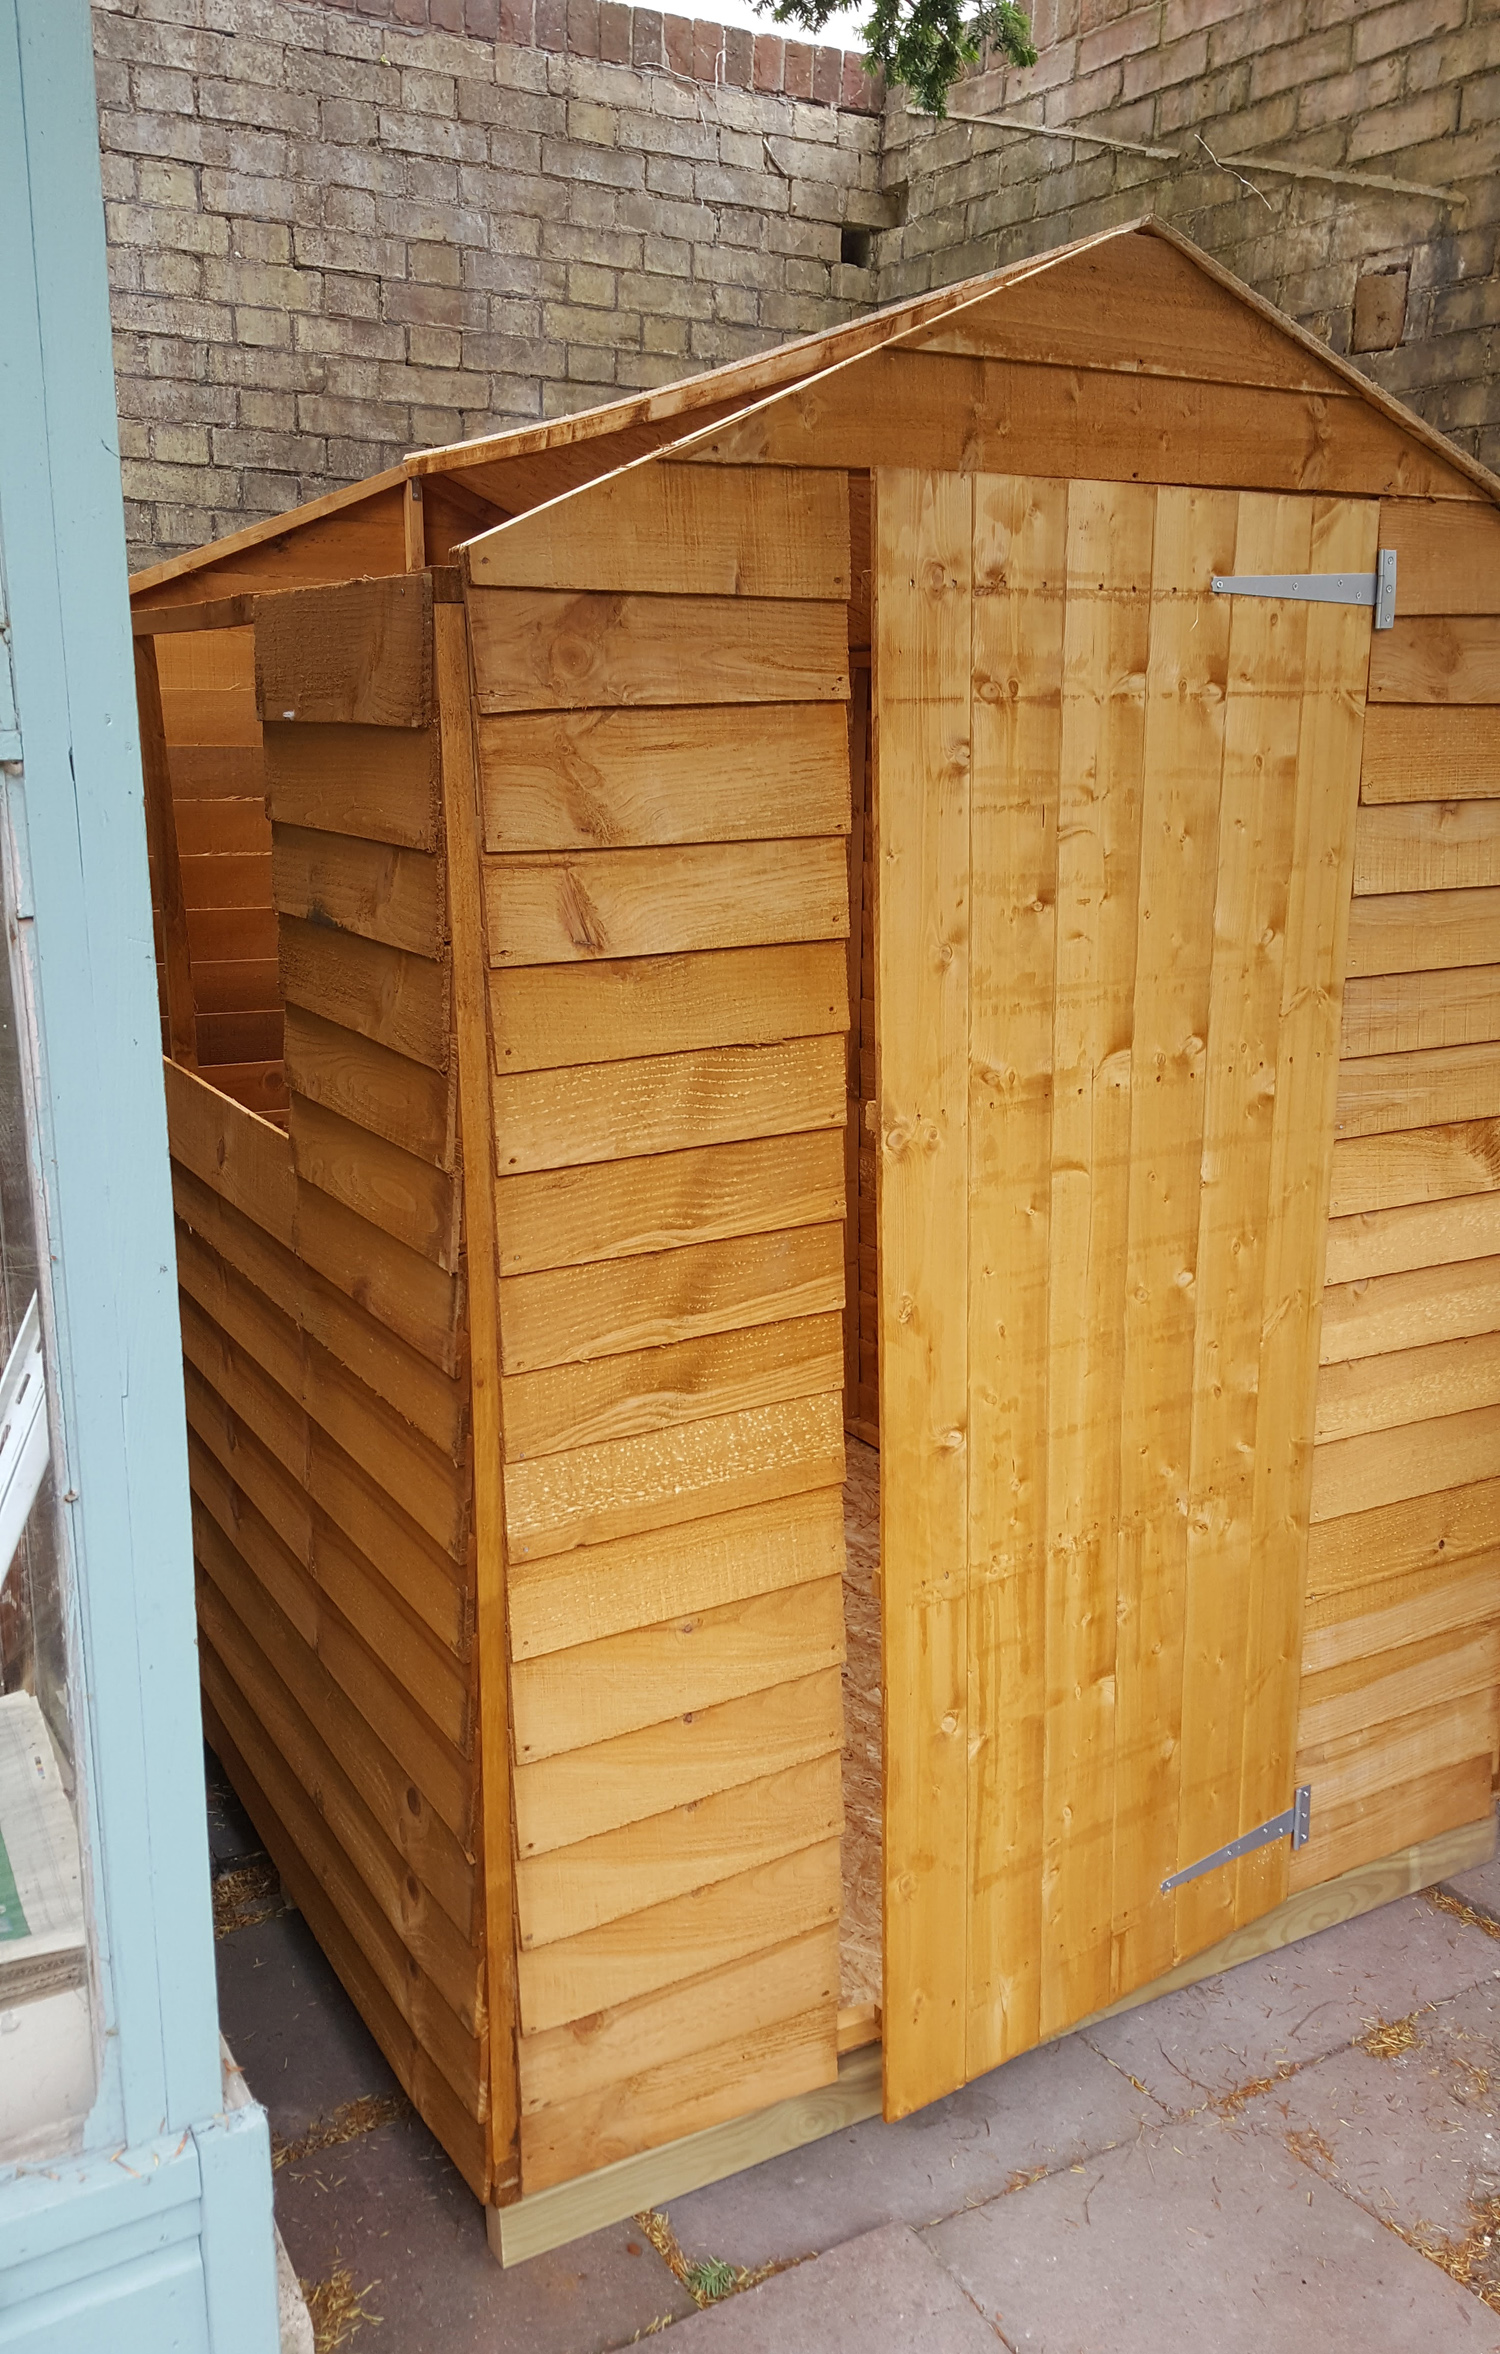 new shed - shell done